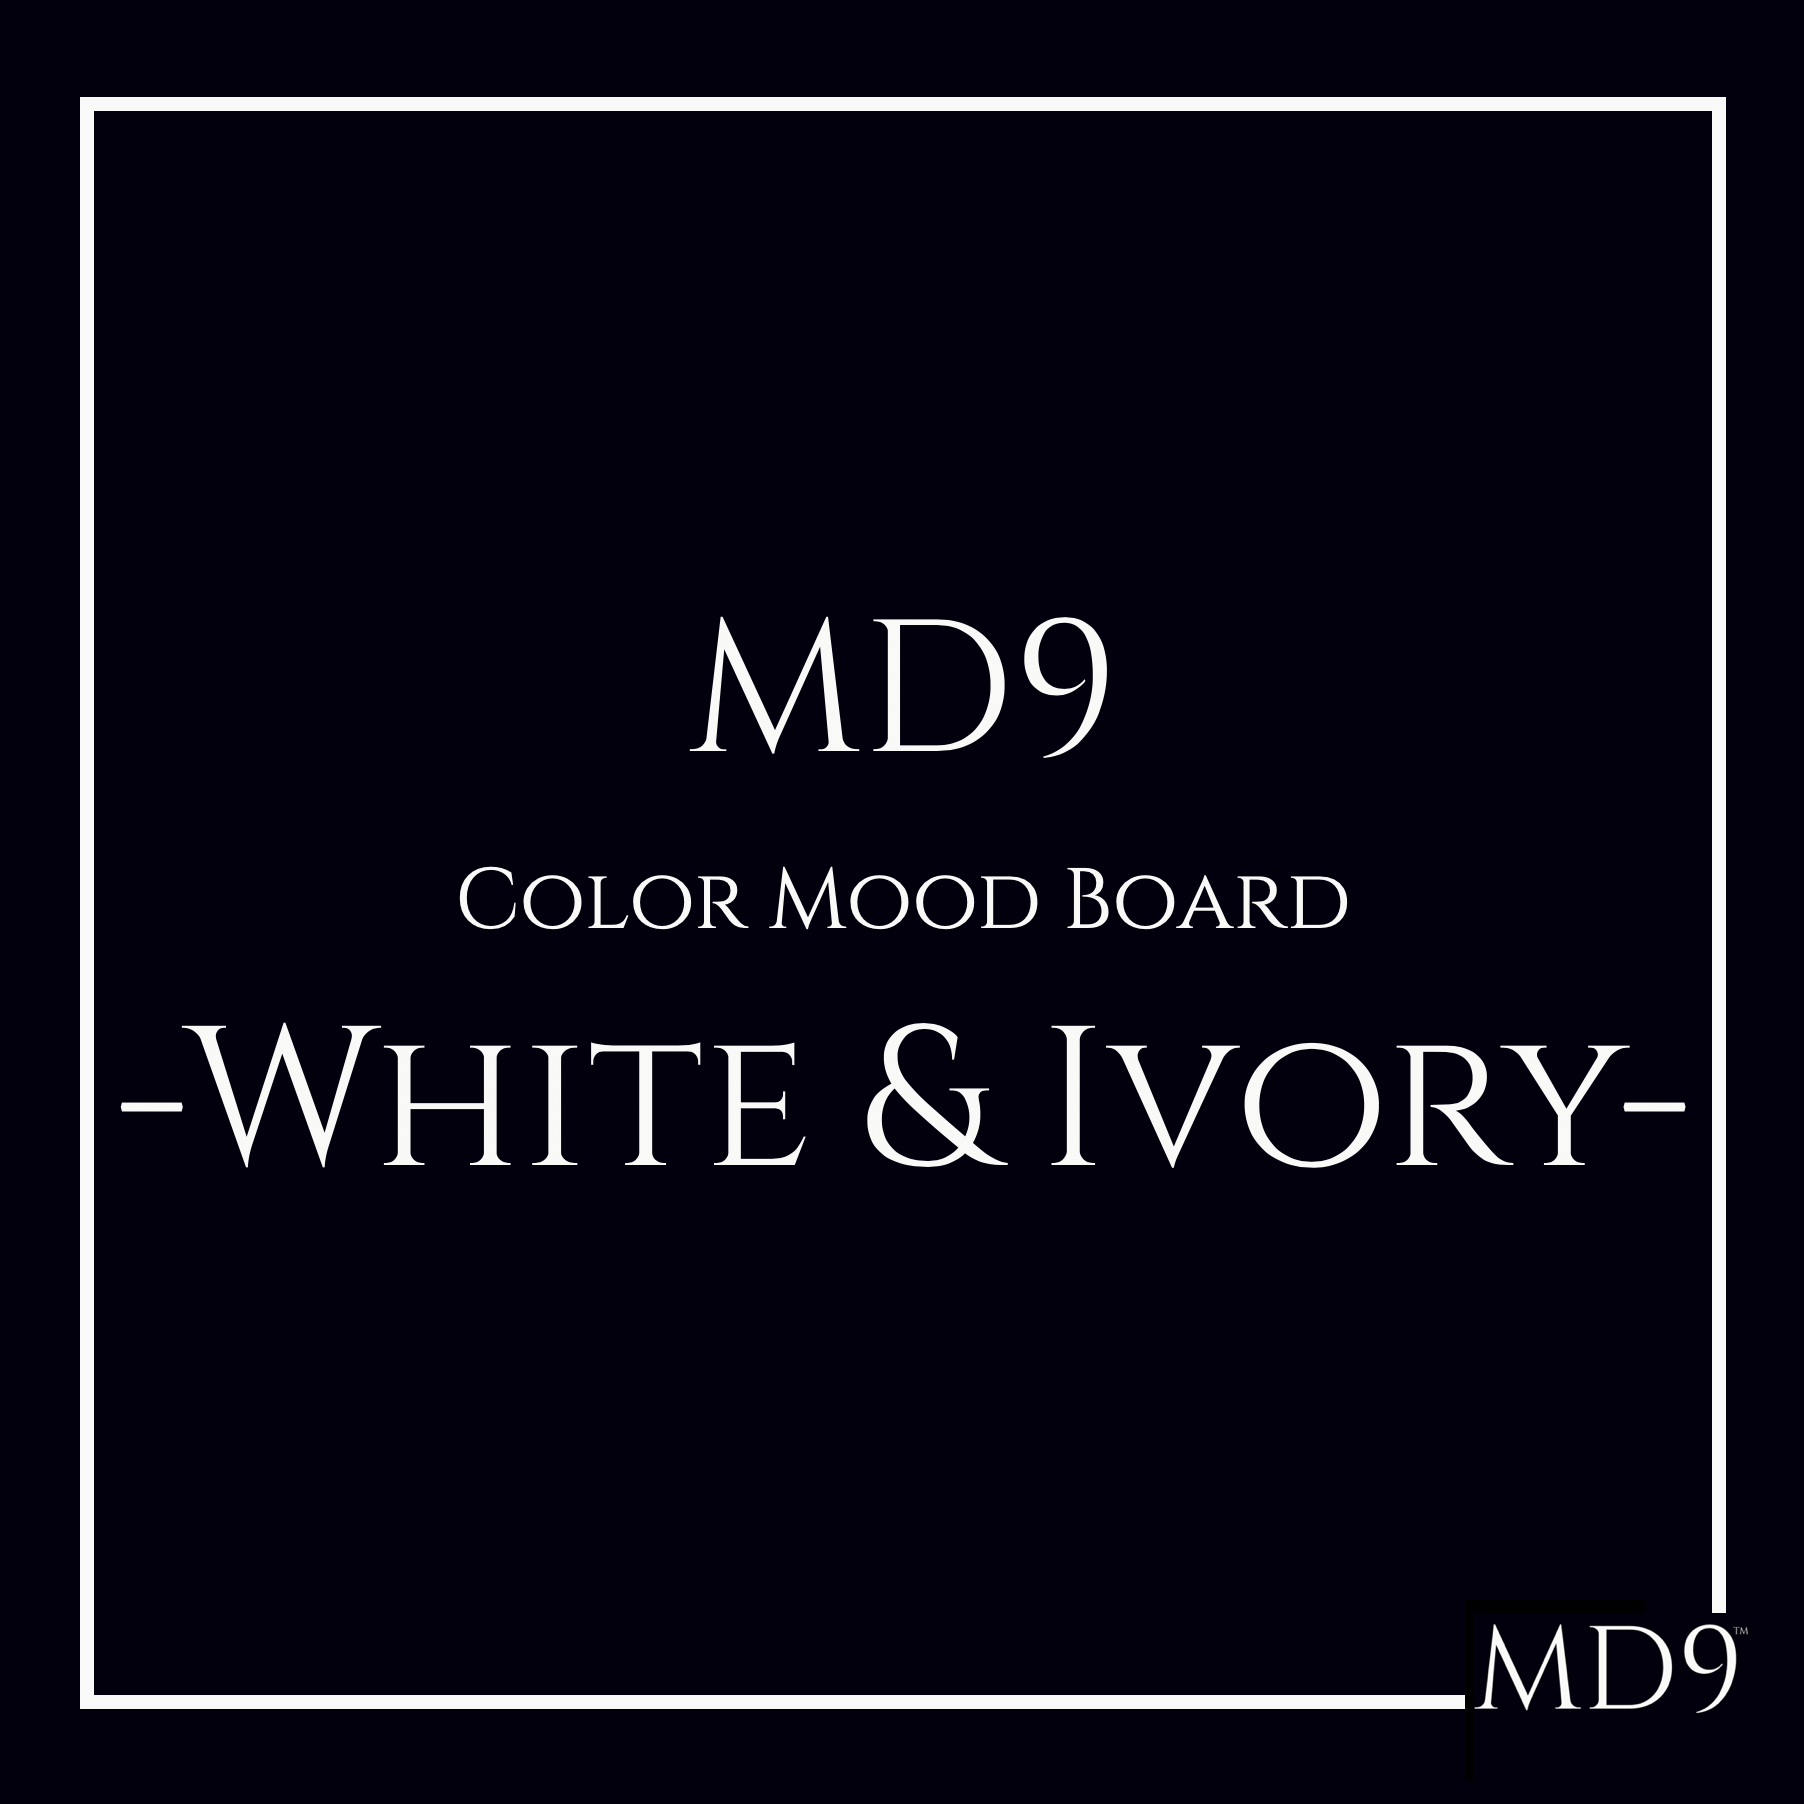 MD9's Colors Mood Board – White & Ivory